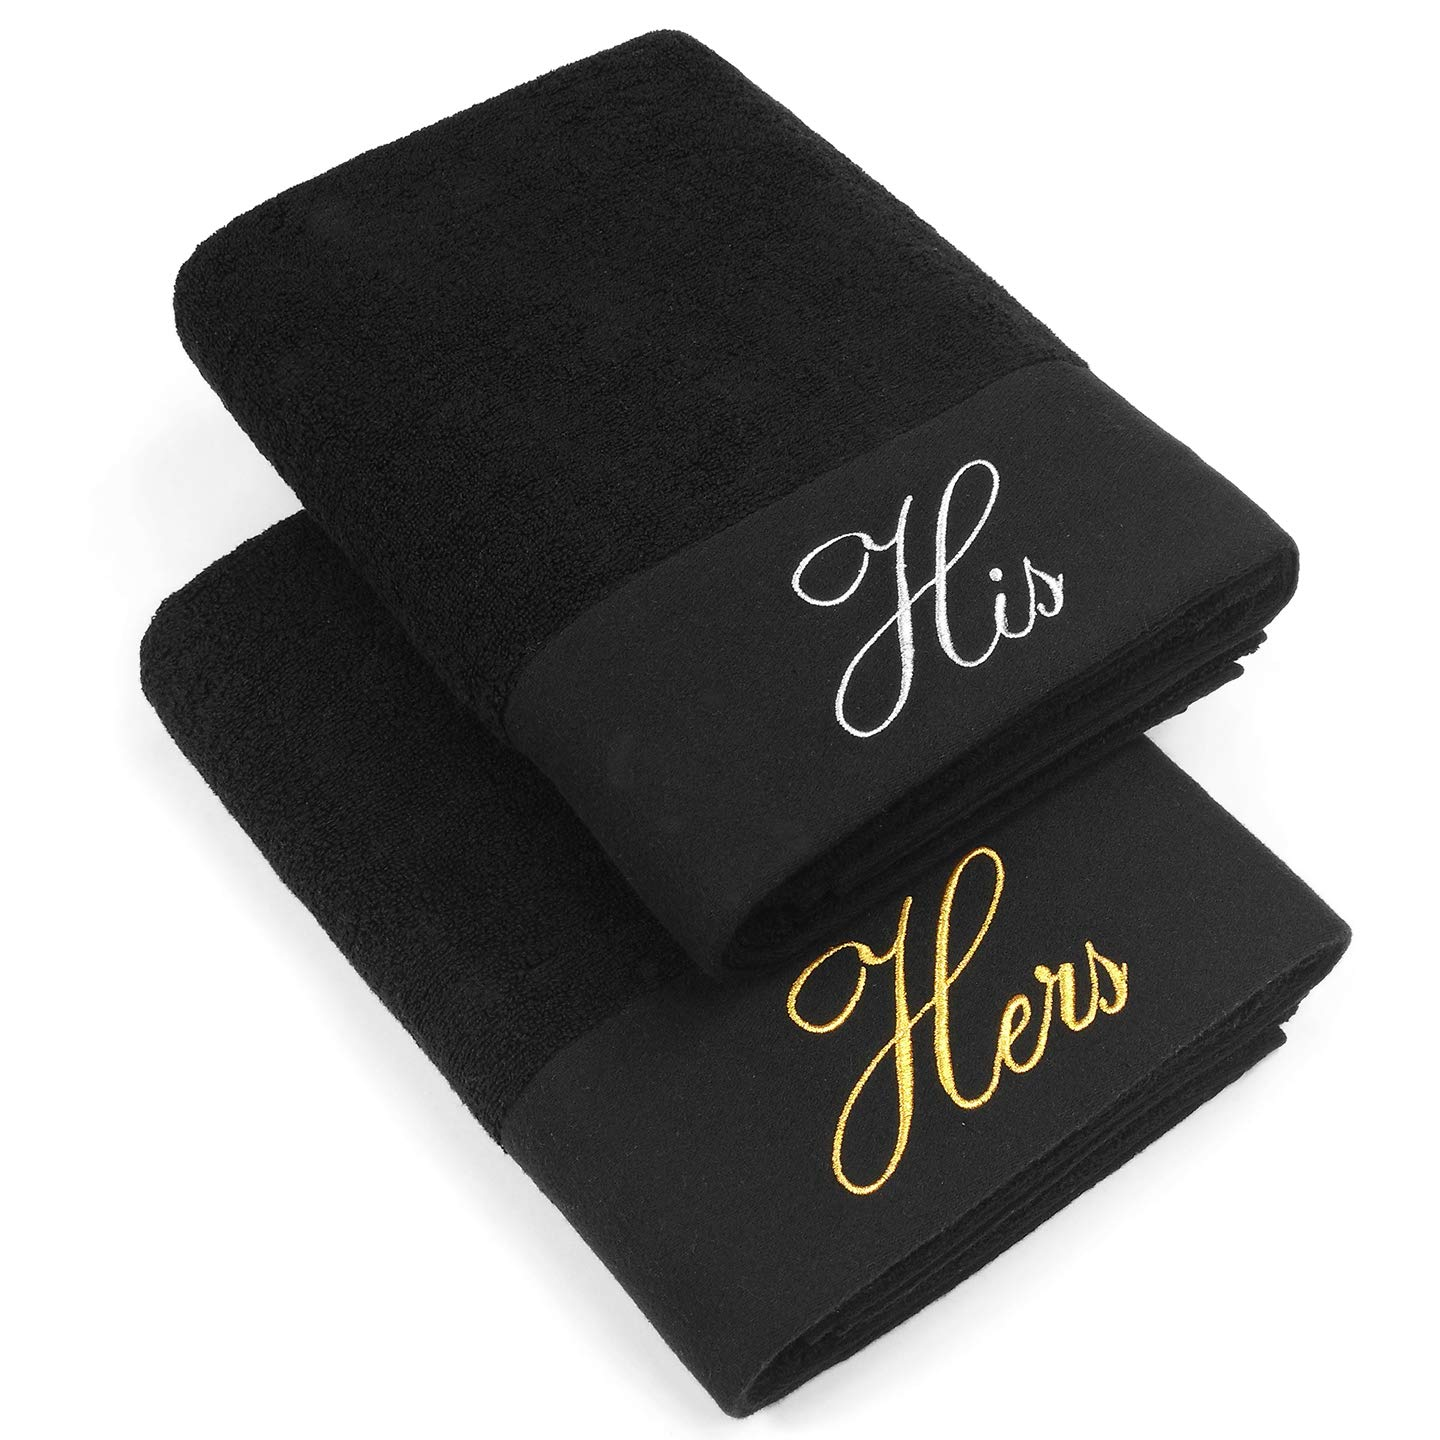 Kaufman - Luxurious Couples Embroidered Bath Sheet Set of 2 Large Towels for Partners (Black - His and Hers)